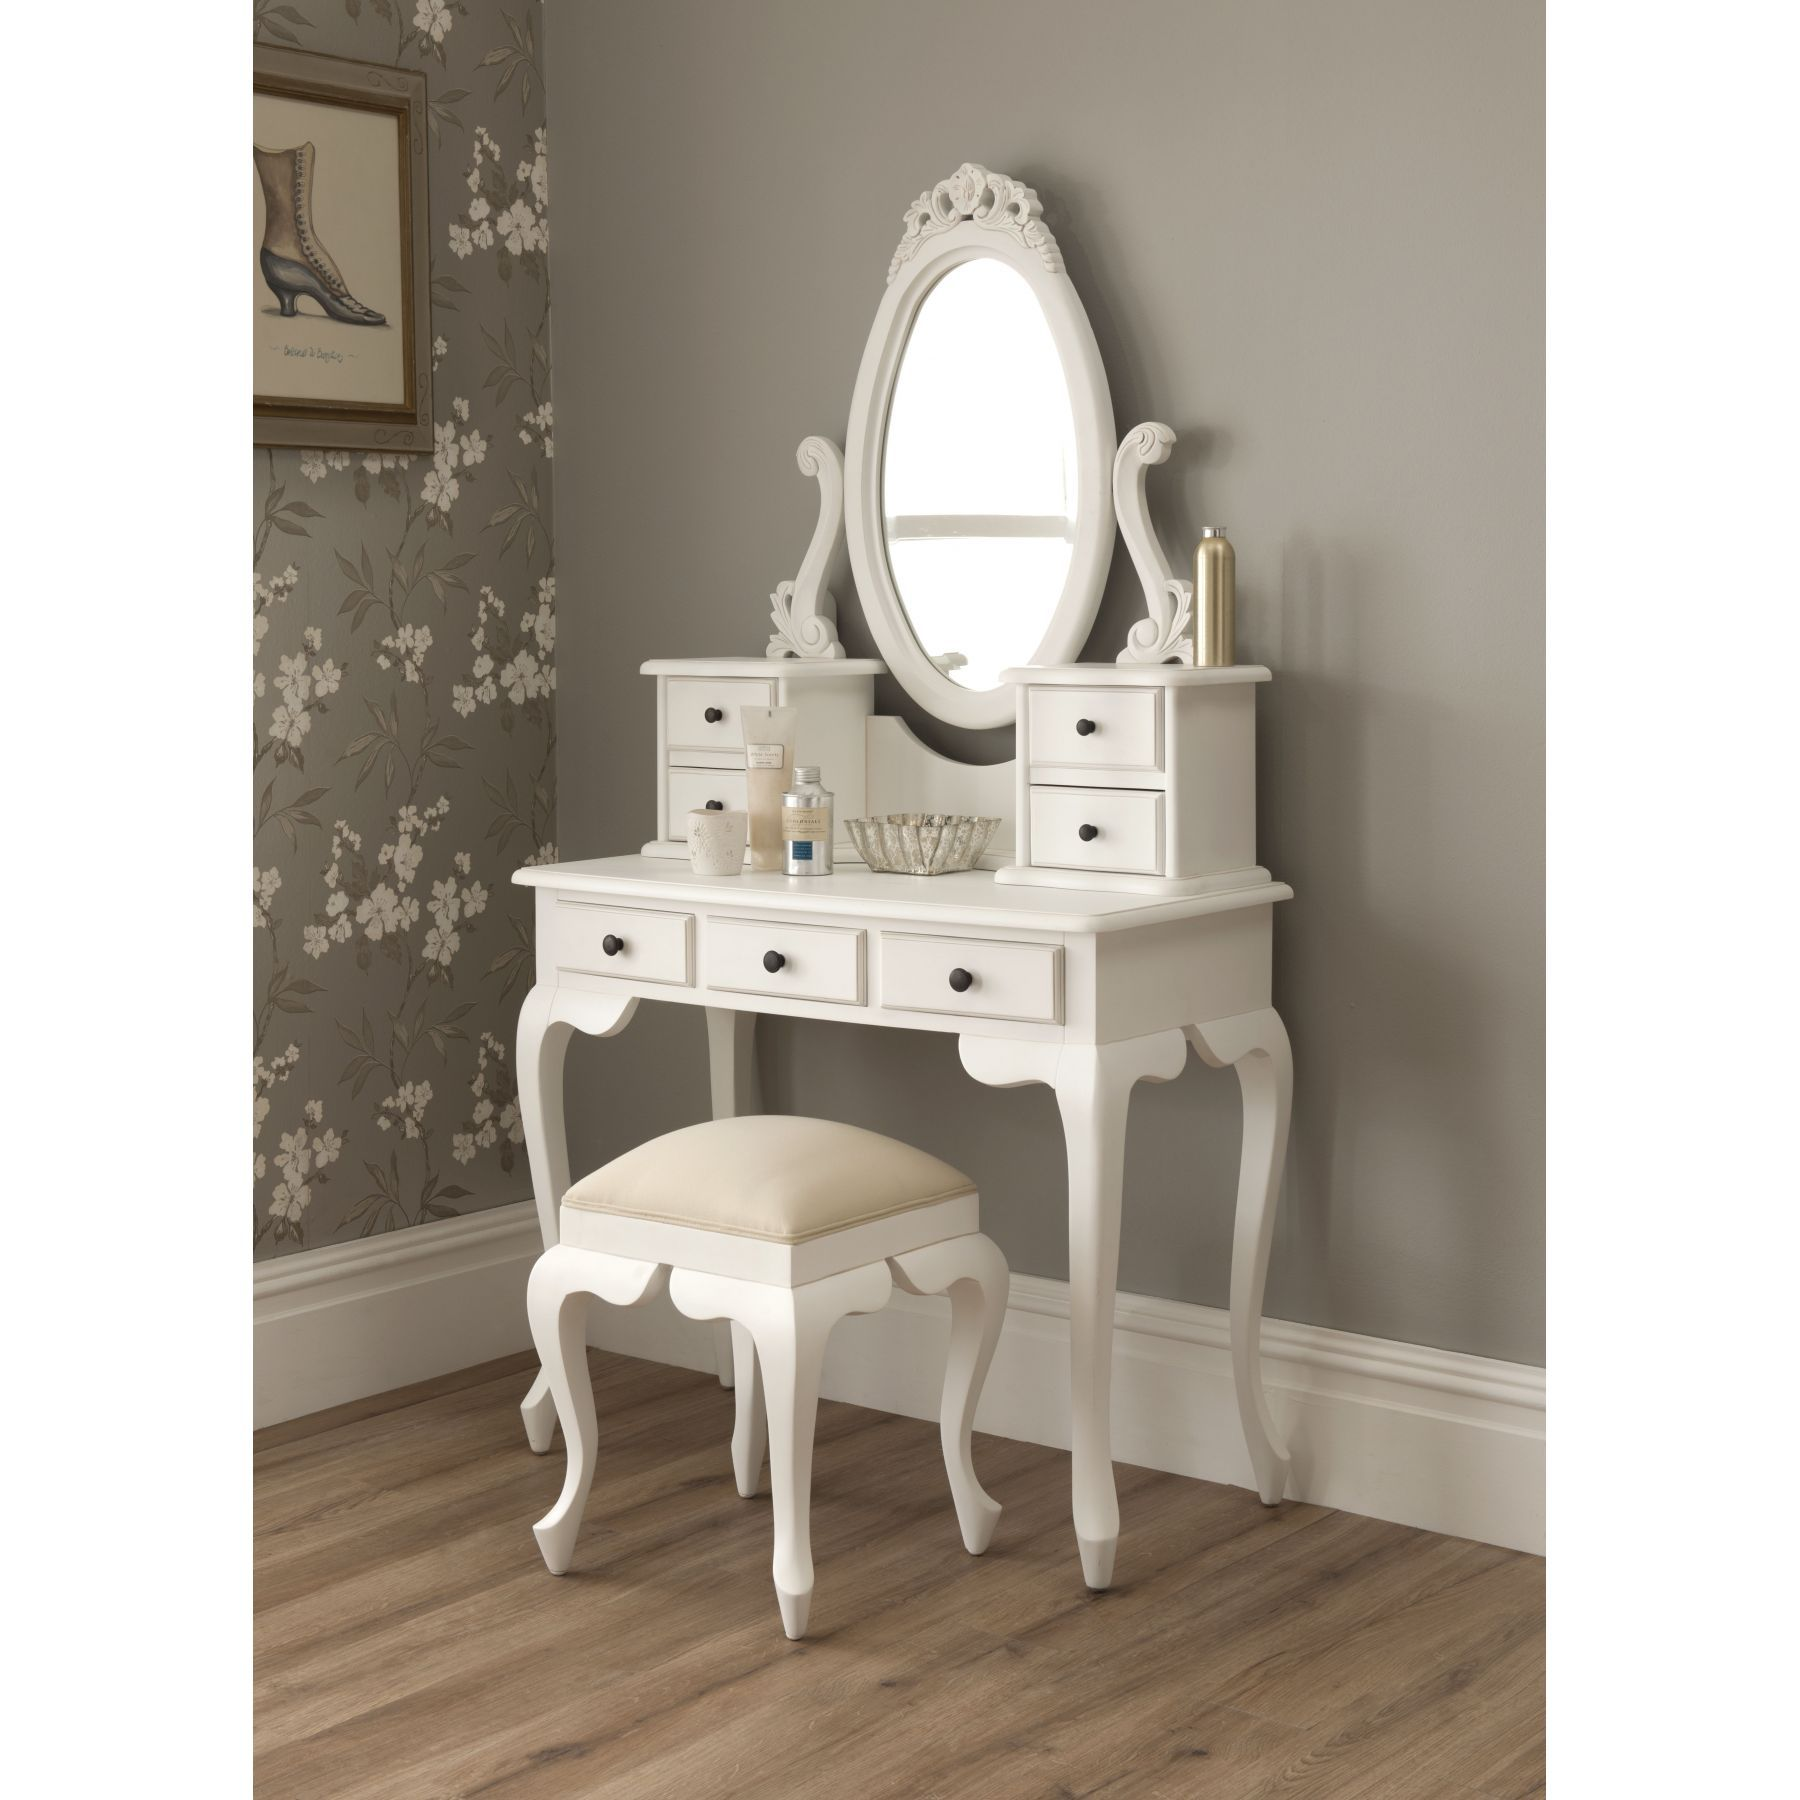 bedroom vanity with models mirror oval Bedroom Pinterest